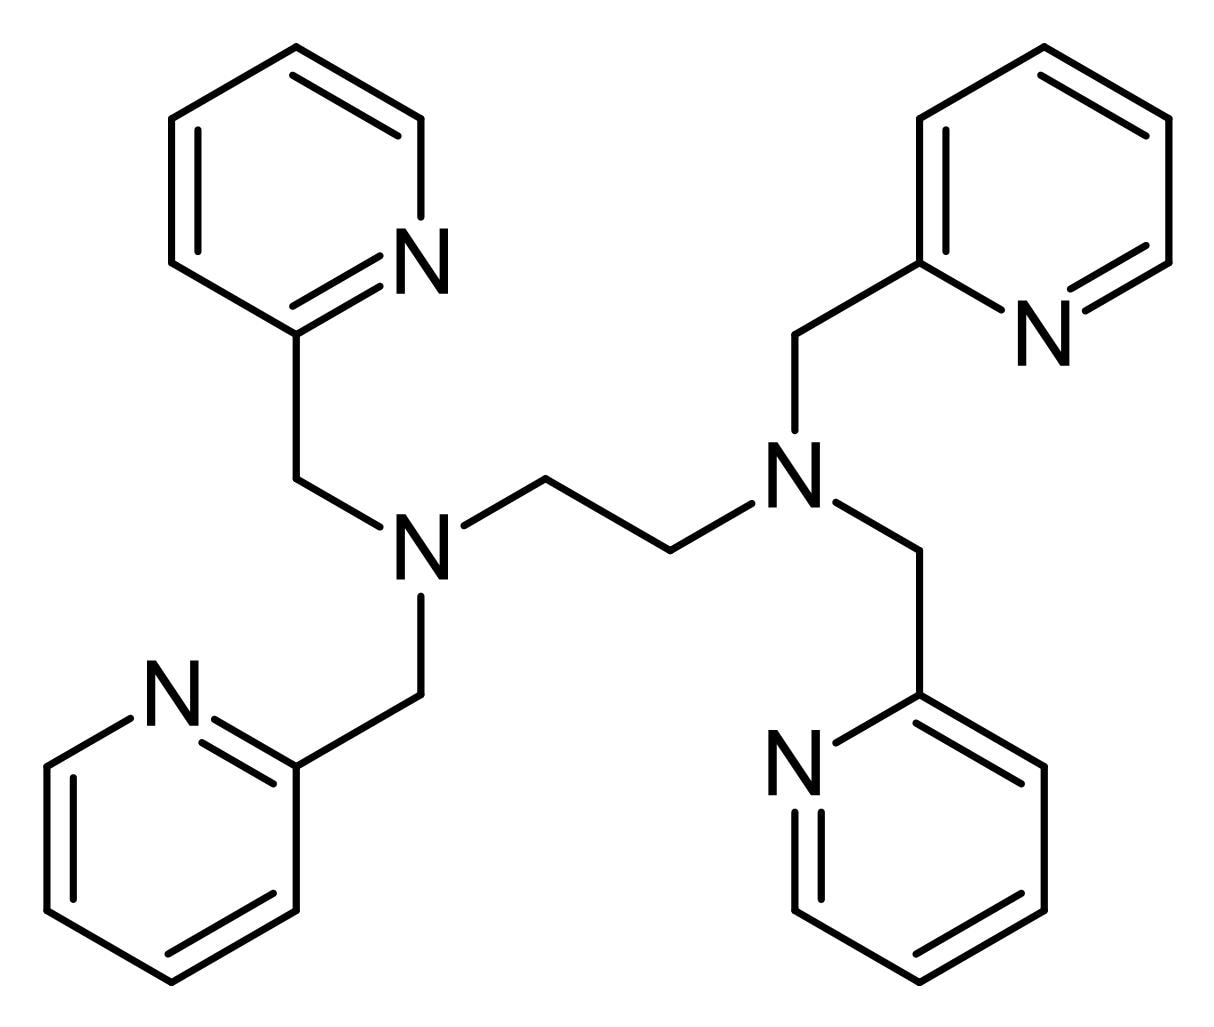 Chemical Structure - TPEN, Metal ion chelator (ab141111)